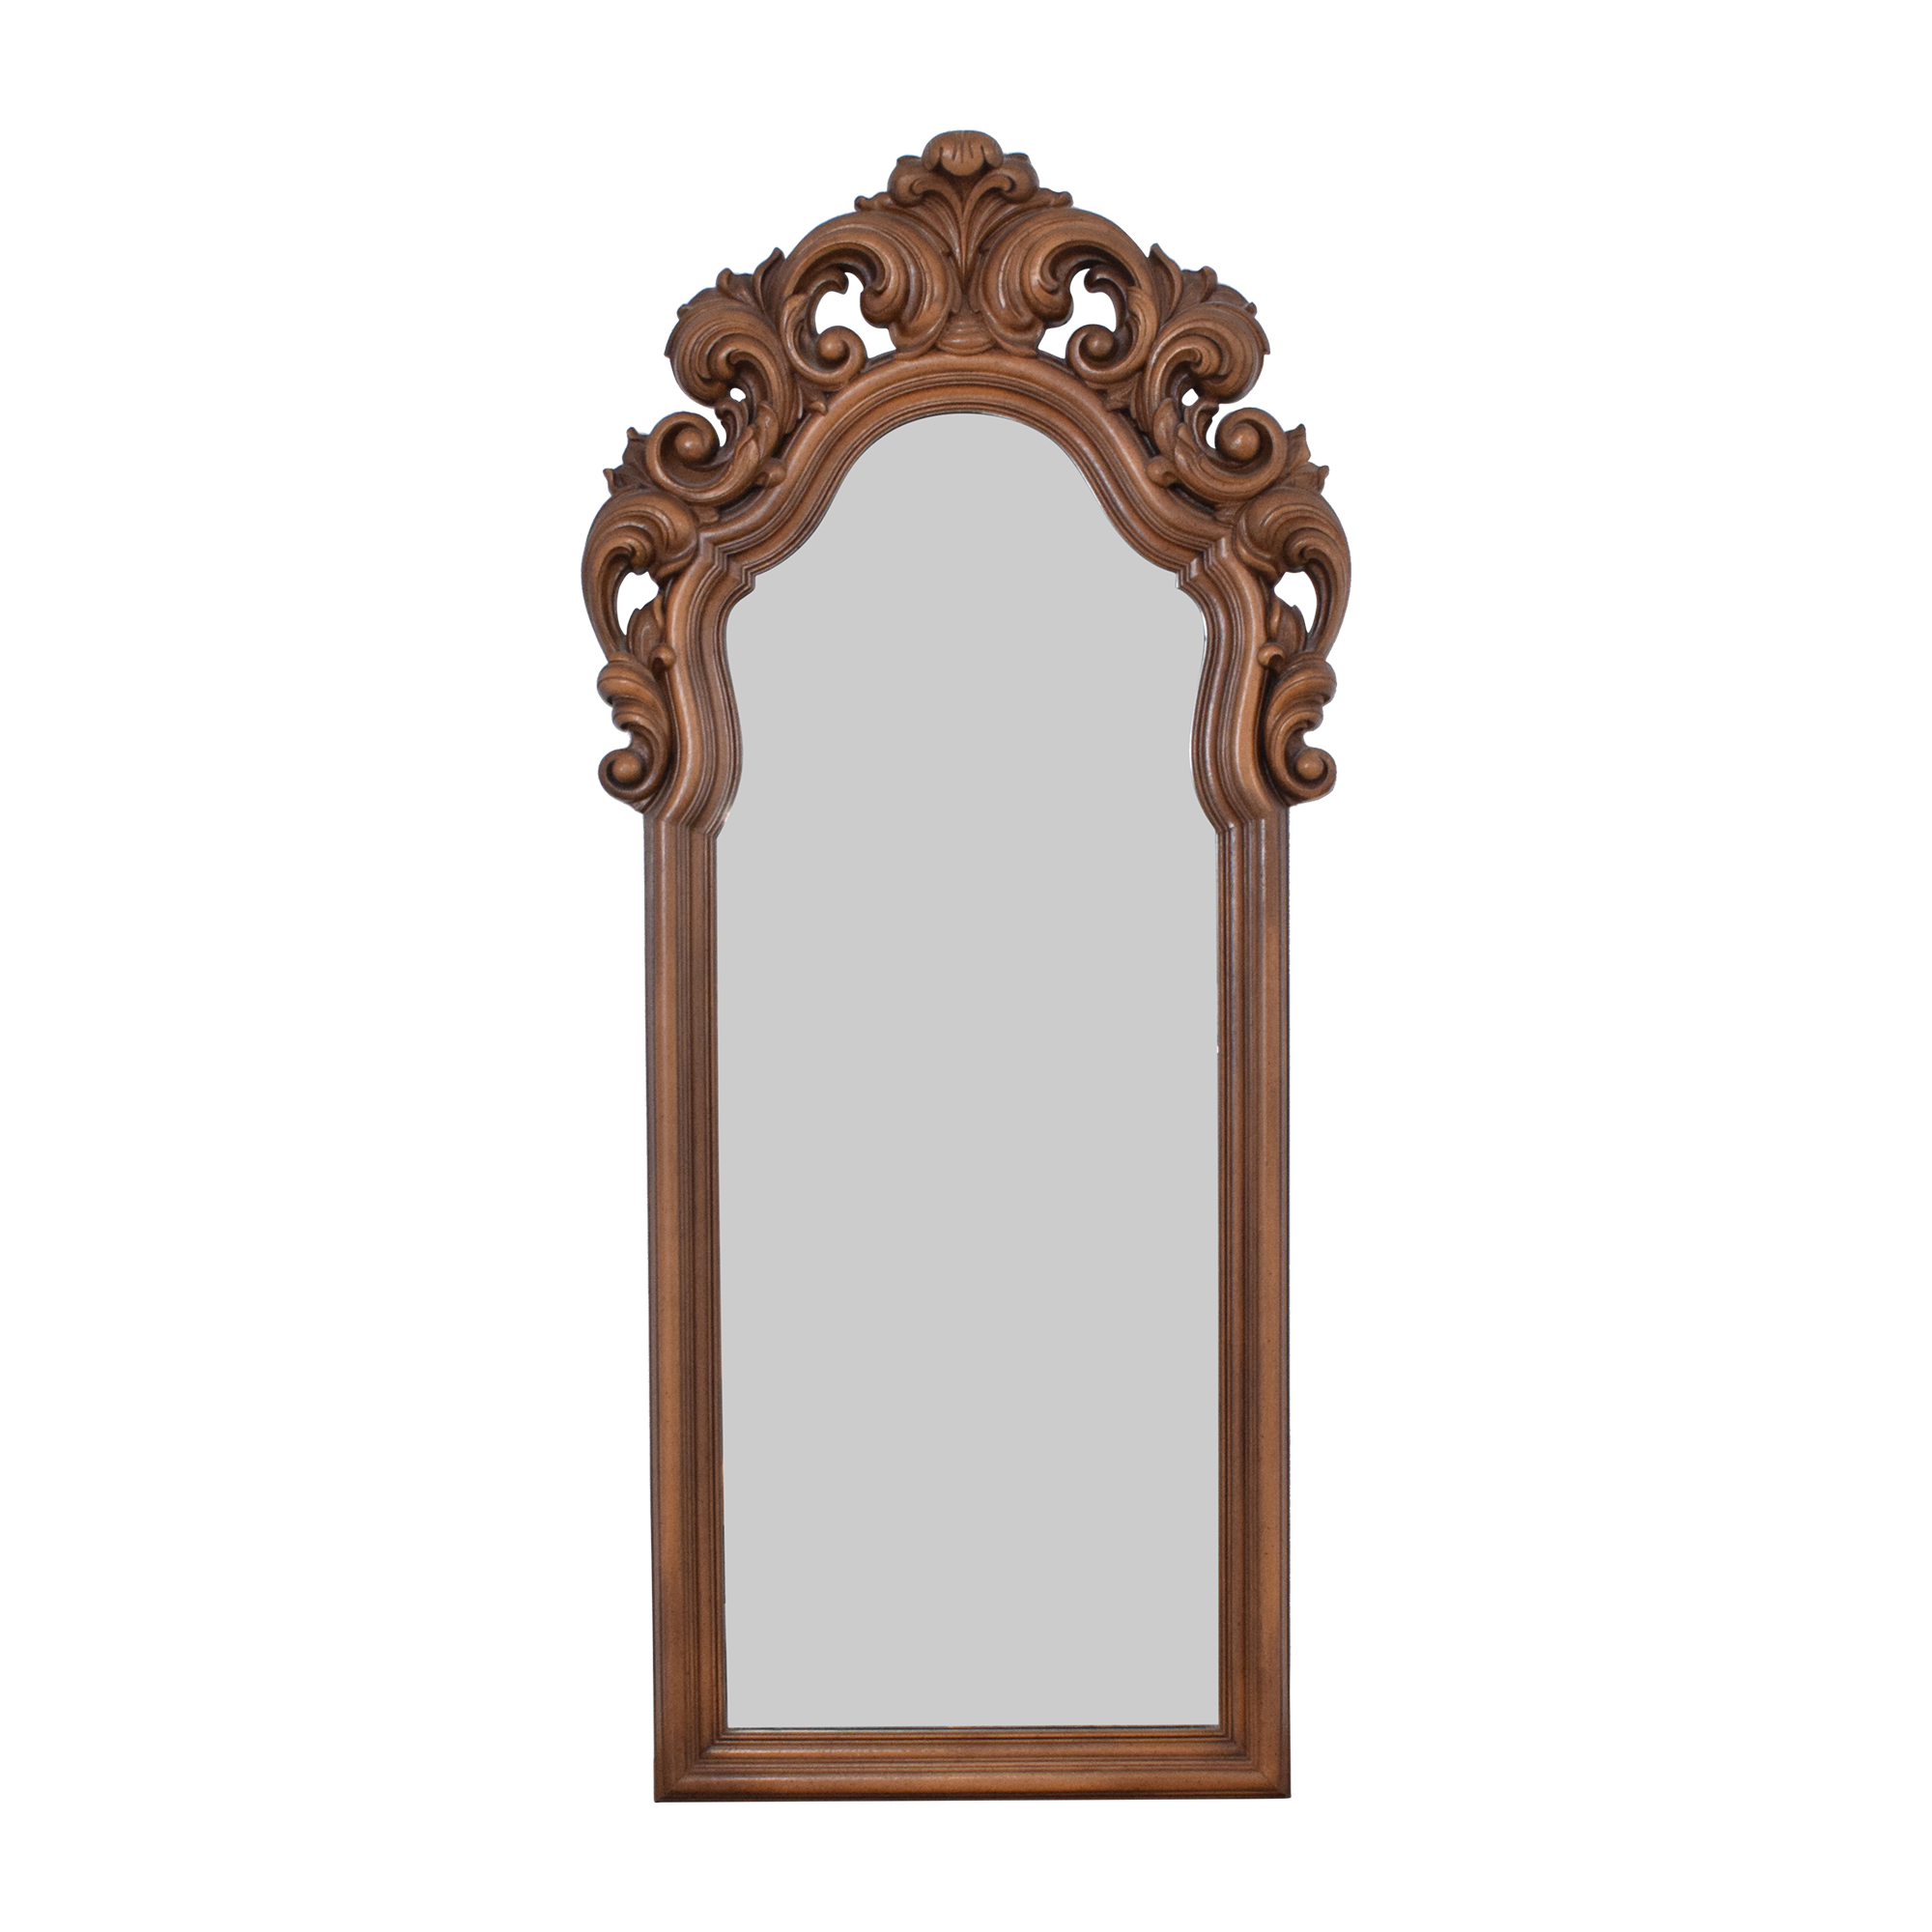 Broyhill Furniture Broyhill Venetian Style Accent Mirror second hand